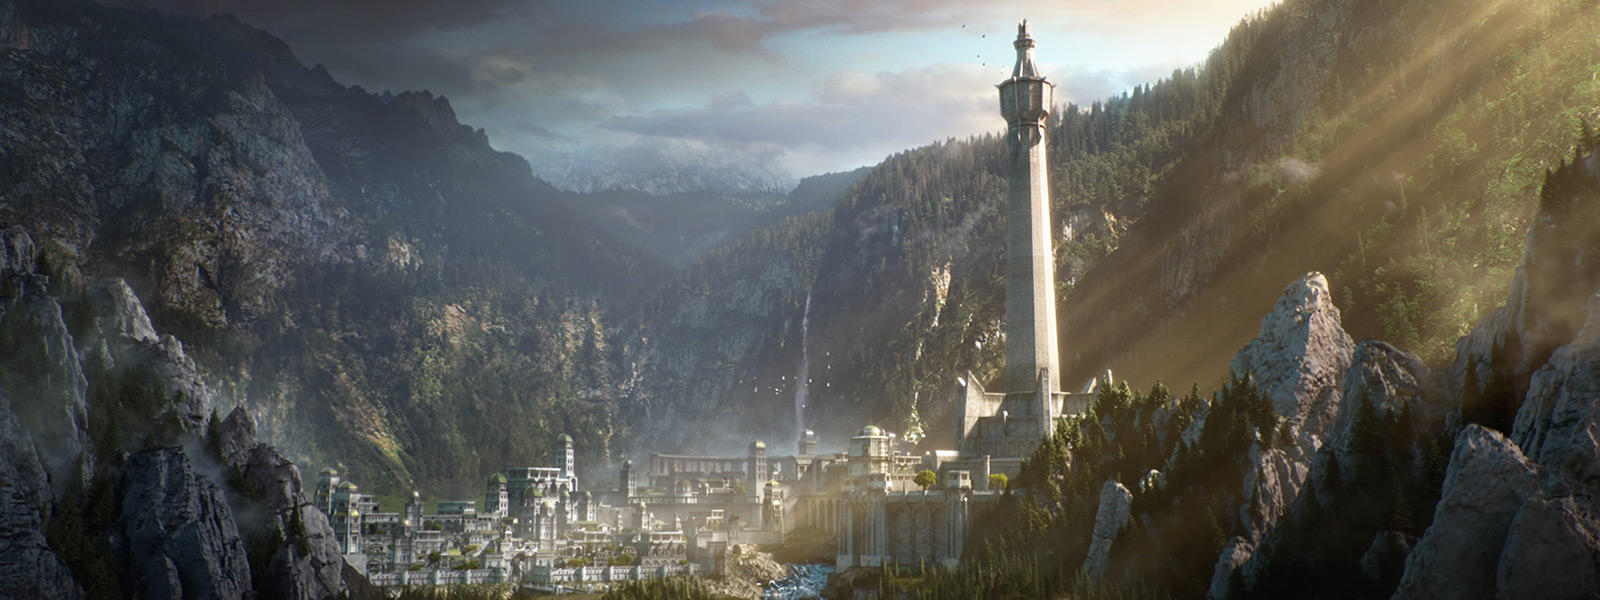 De zon schijnt op de witte stad Minas Ithil uit de game Middle-earth: Shadow of War